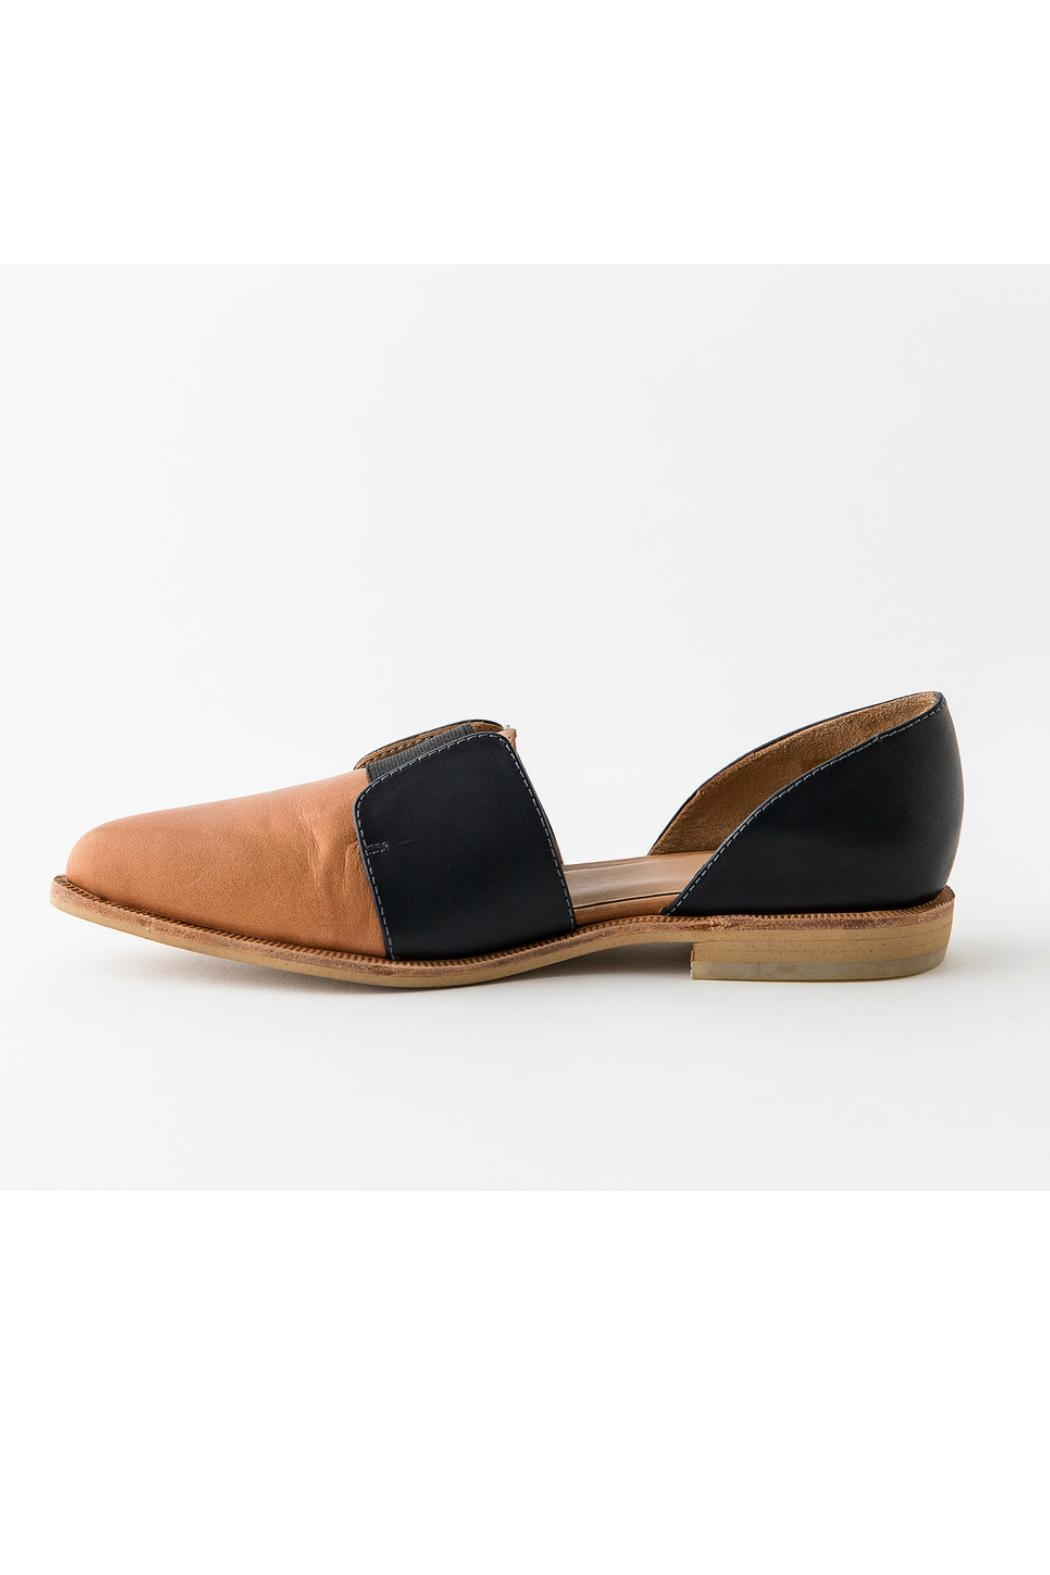 Fortress of Inca Two-Tone Leather Loafer - Main Image